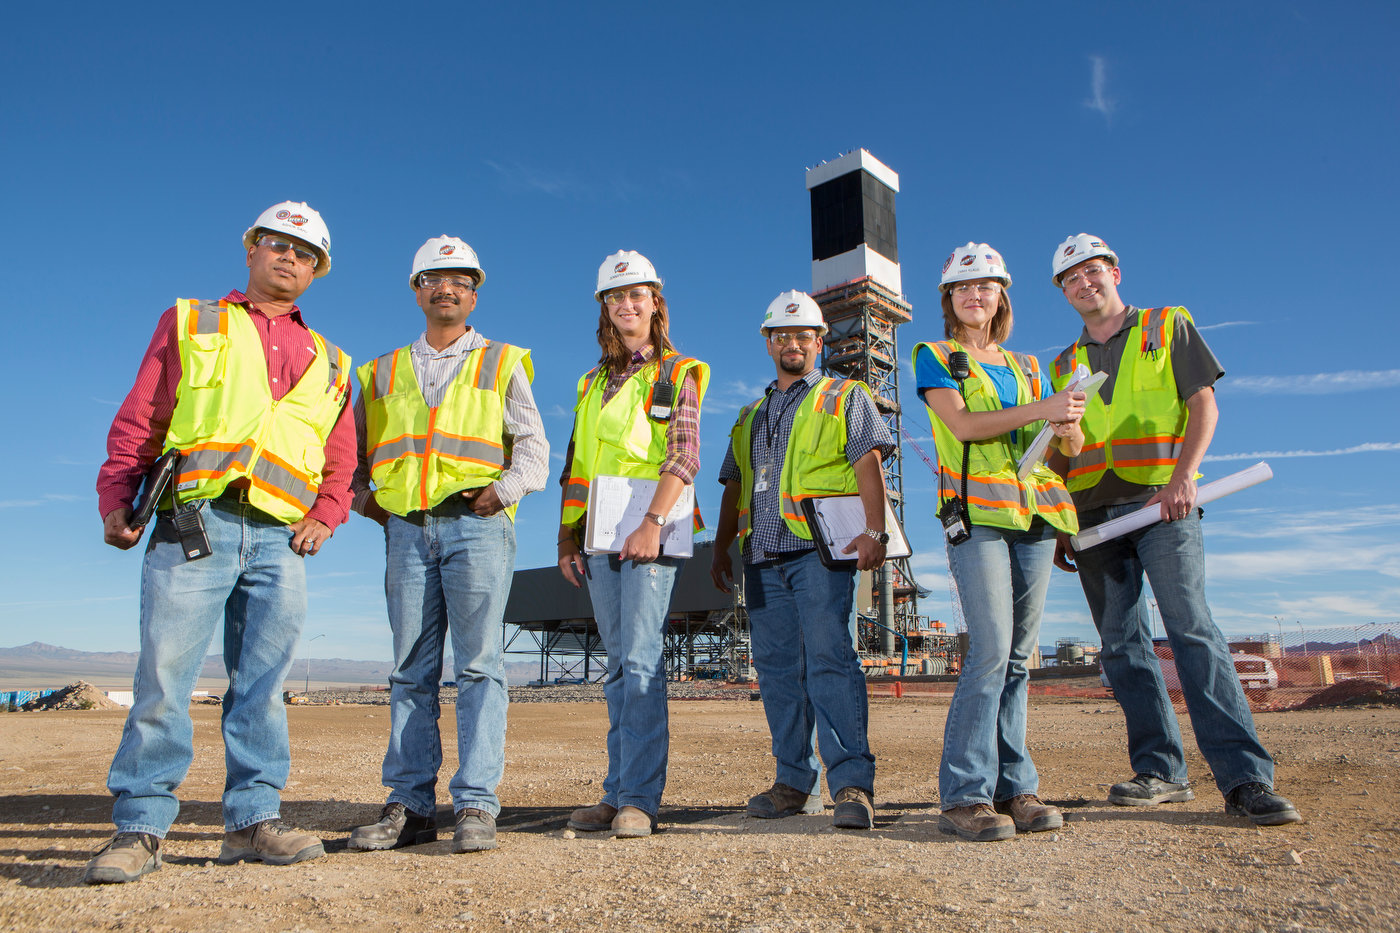 IVANPAH, CALIFORNIA, OCTOBER 18 2012: Left to Right, Ashok Sahu, Shriram Waghmode, Jennifer Arnold, Mike Fahim, Emma Klaus and Marc Coleman near Tower 1, at the Ivanpah Solar Project (photo Gilles Mingasson/Getty Images for Bechtel).